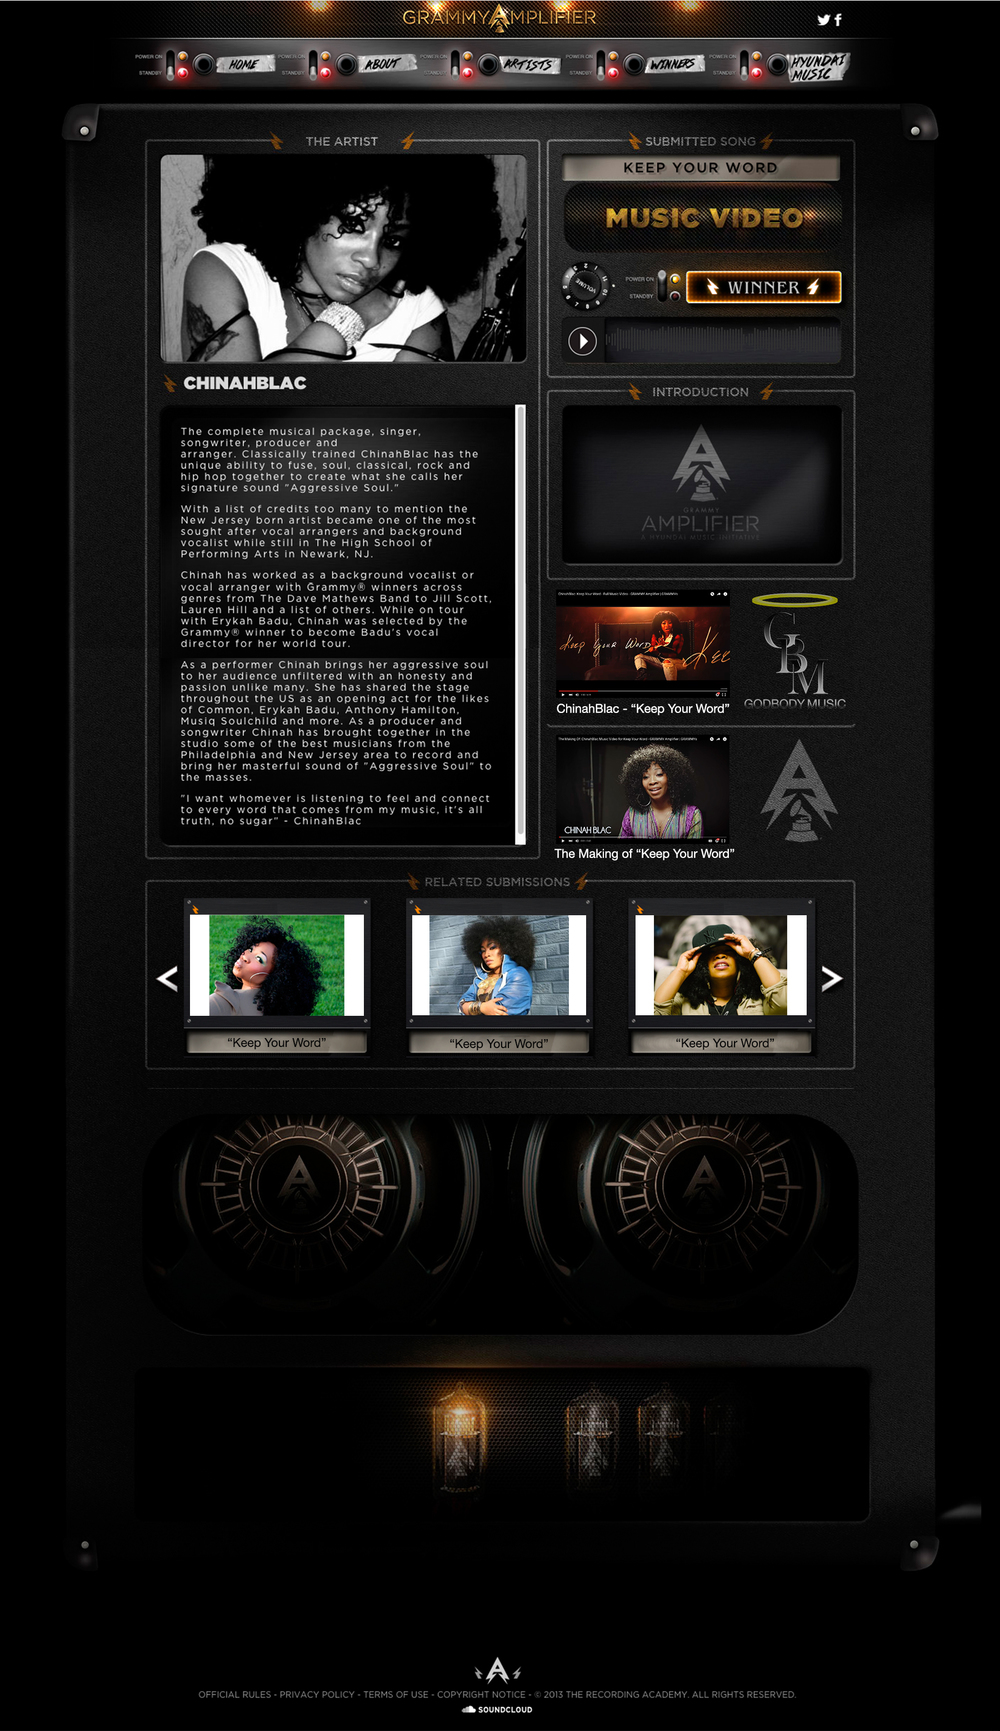 ChinahBlac Grammy Amplifier